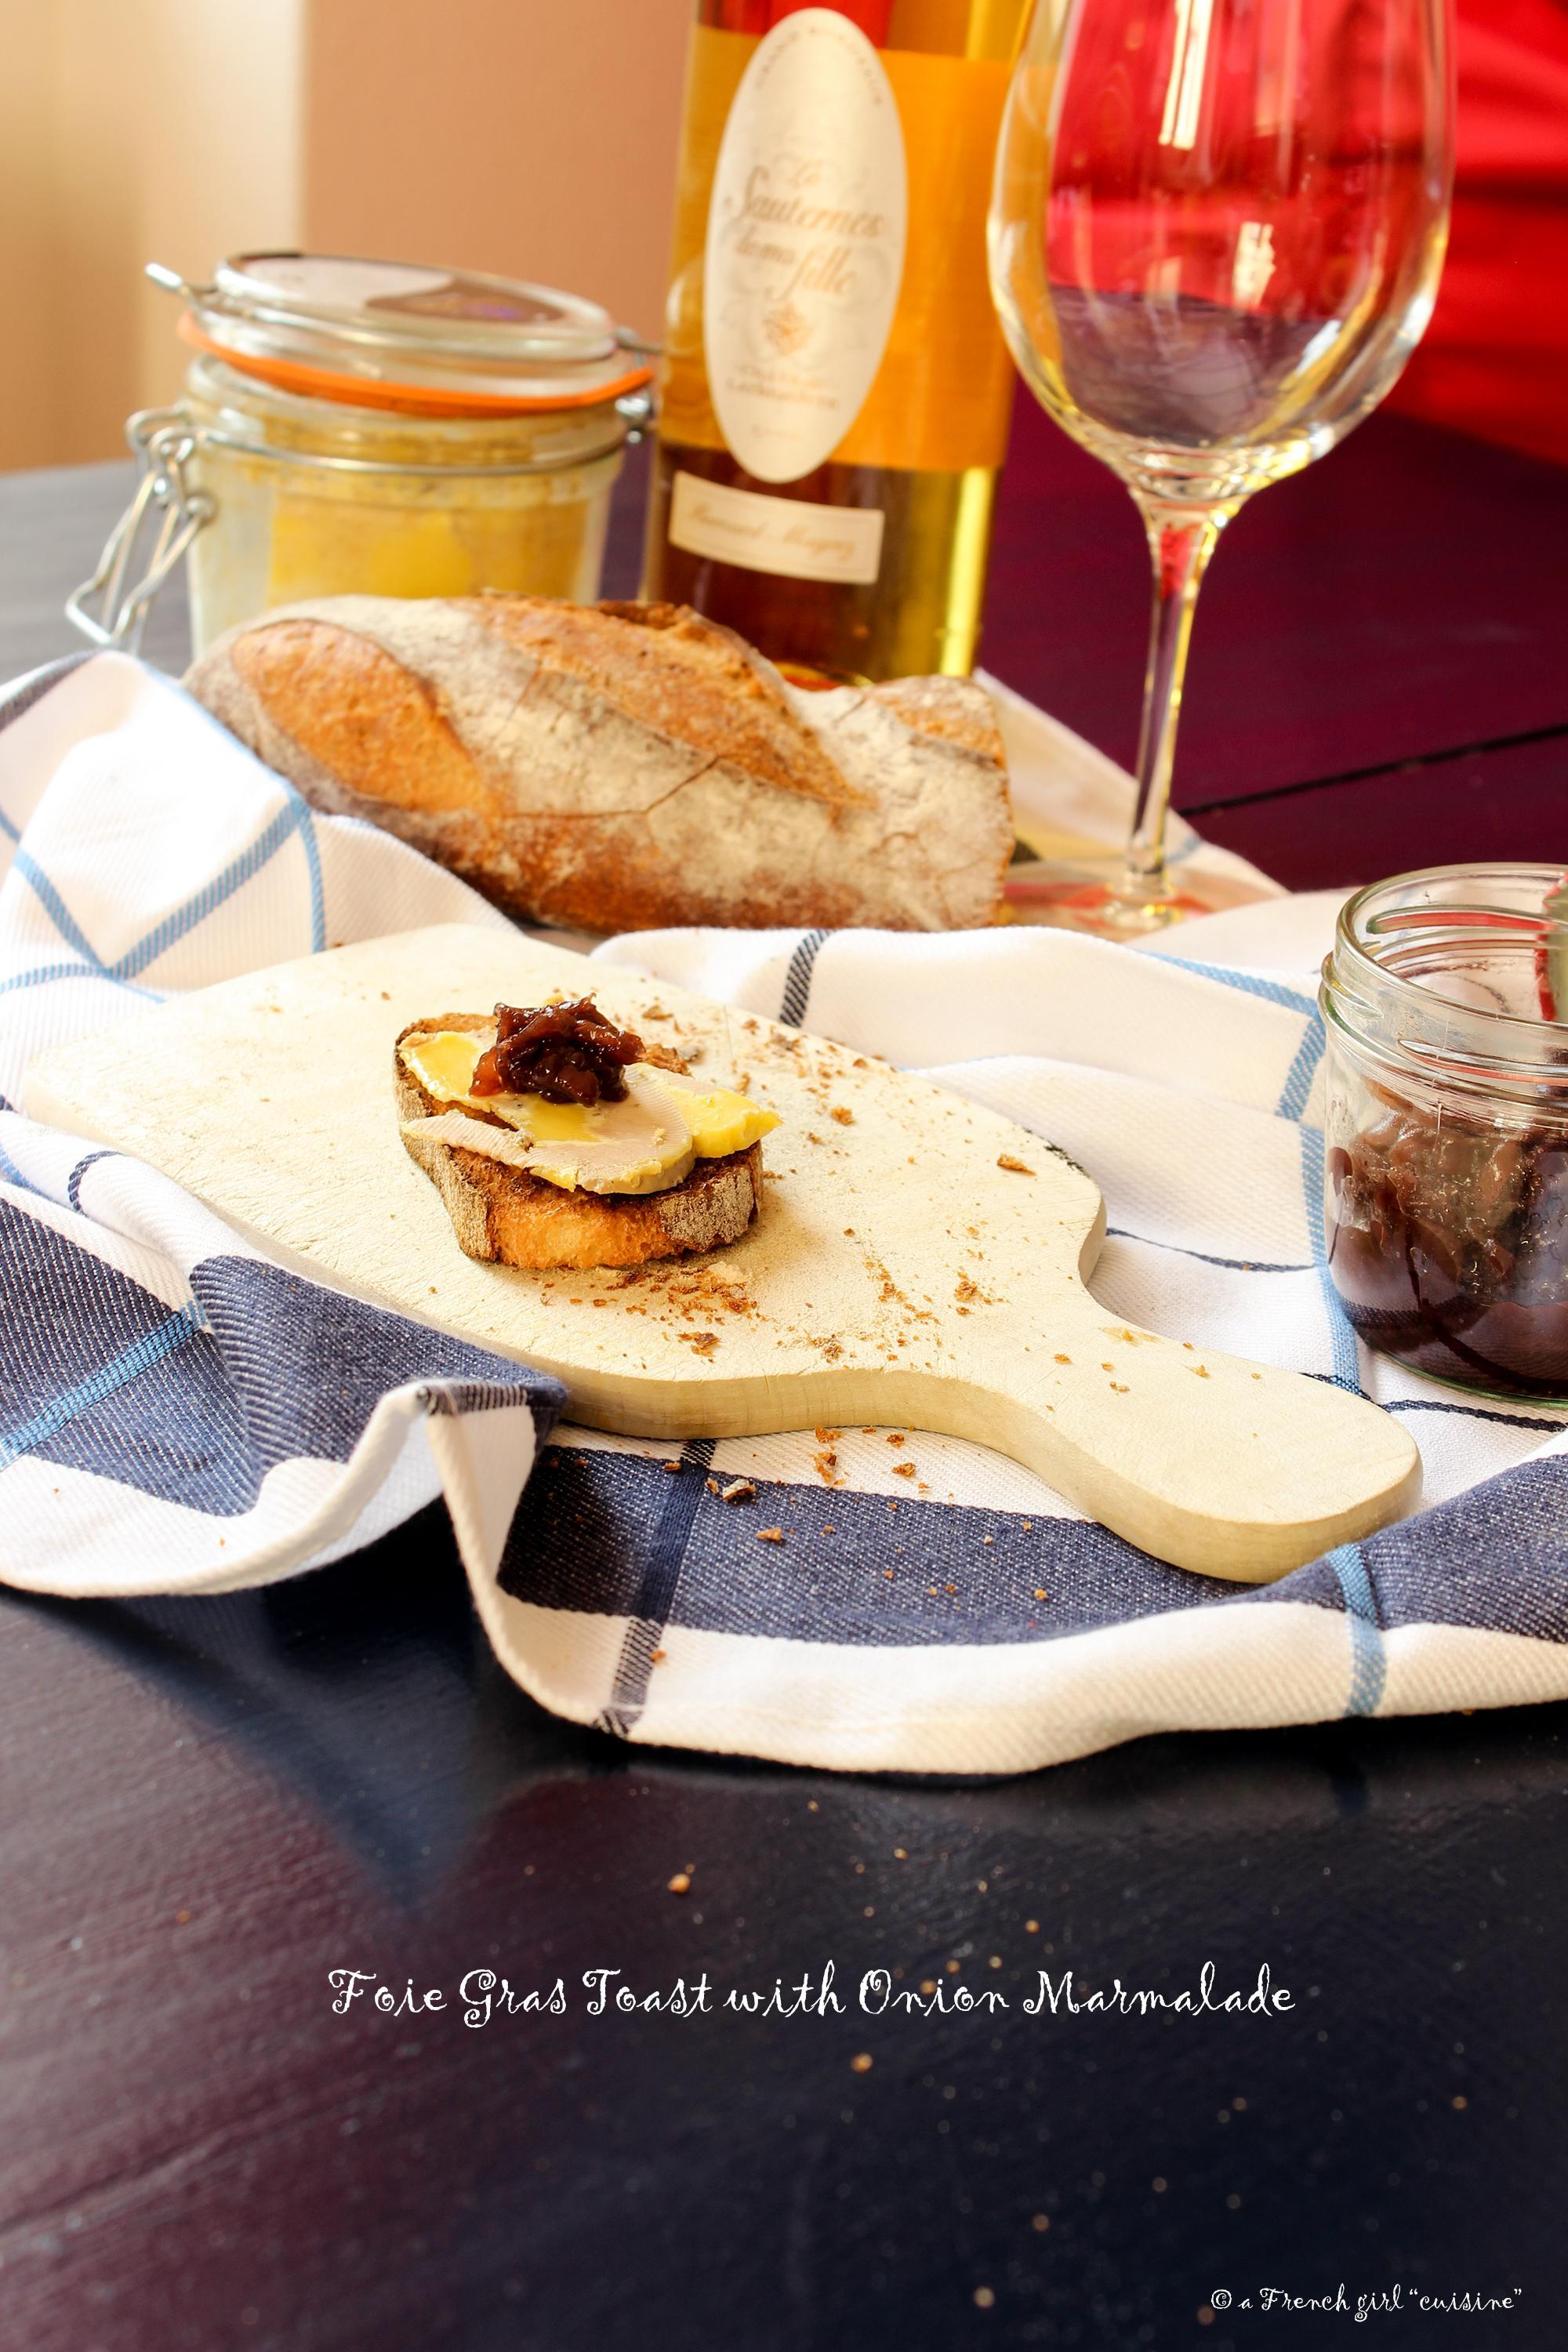 Foie Gras with Onion Marmalade